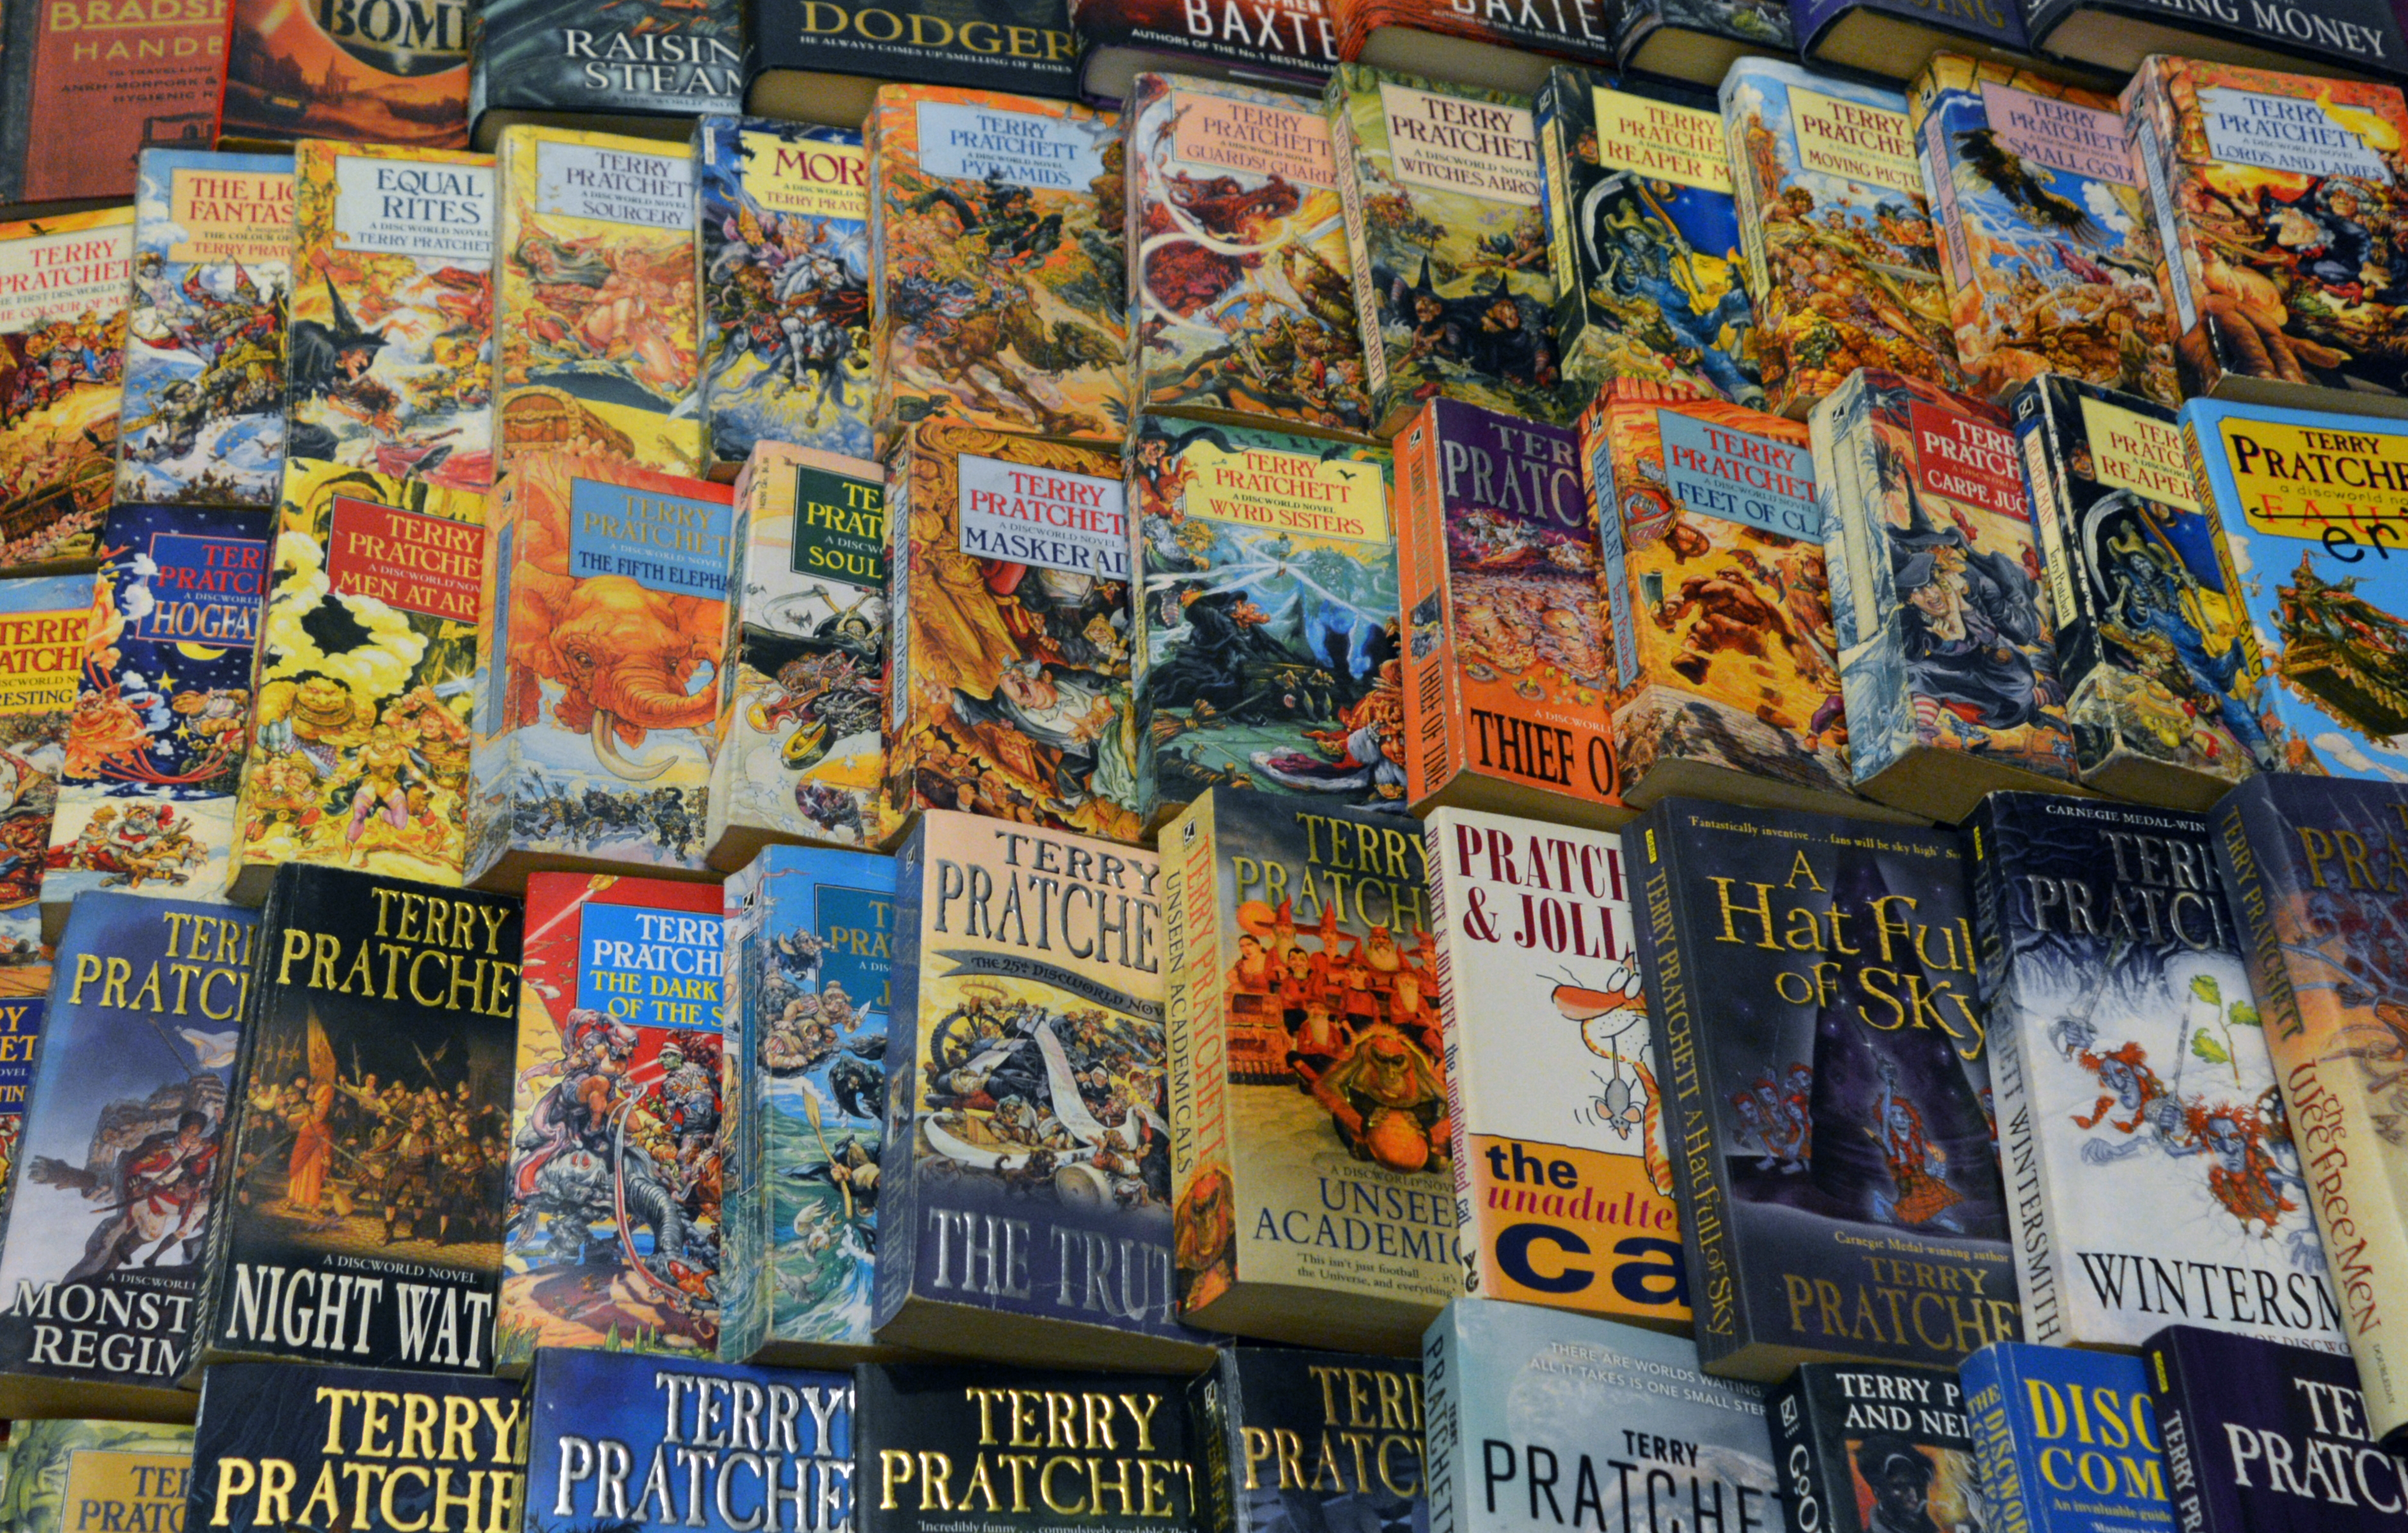 Goodbye to Terry Pratchett, the only writer who ever truly conquered my inner cynic